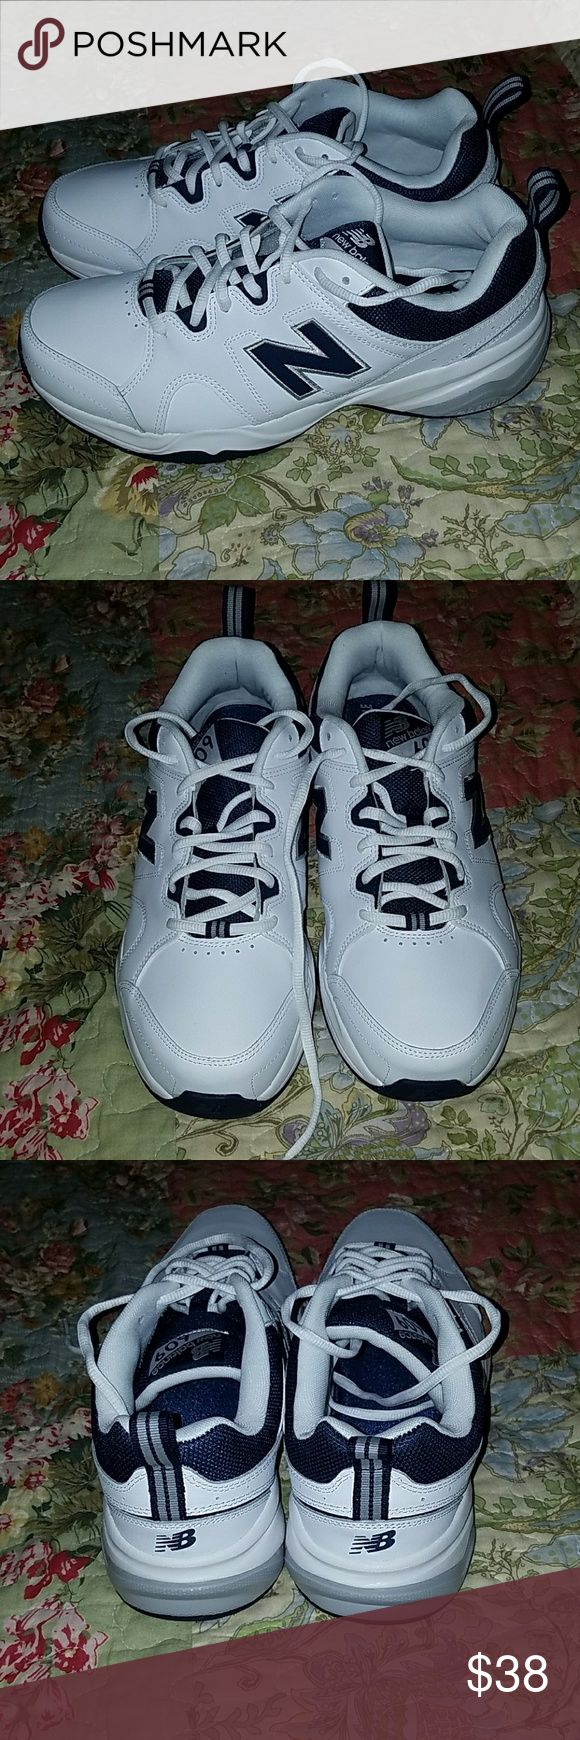 Men's New Balance NB 609 Sneakers Sz. 10 2E NEW Men's New Balance NB 609 Sneakers Sz. 10 2E NEW . These are brand new never worn. Memory sole comfort insole. White and navy New Balance Shoes Sneakers